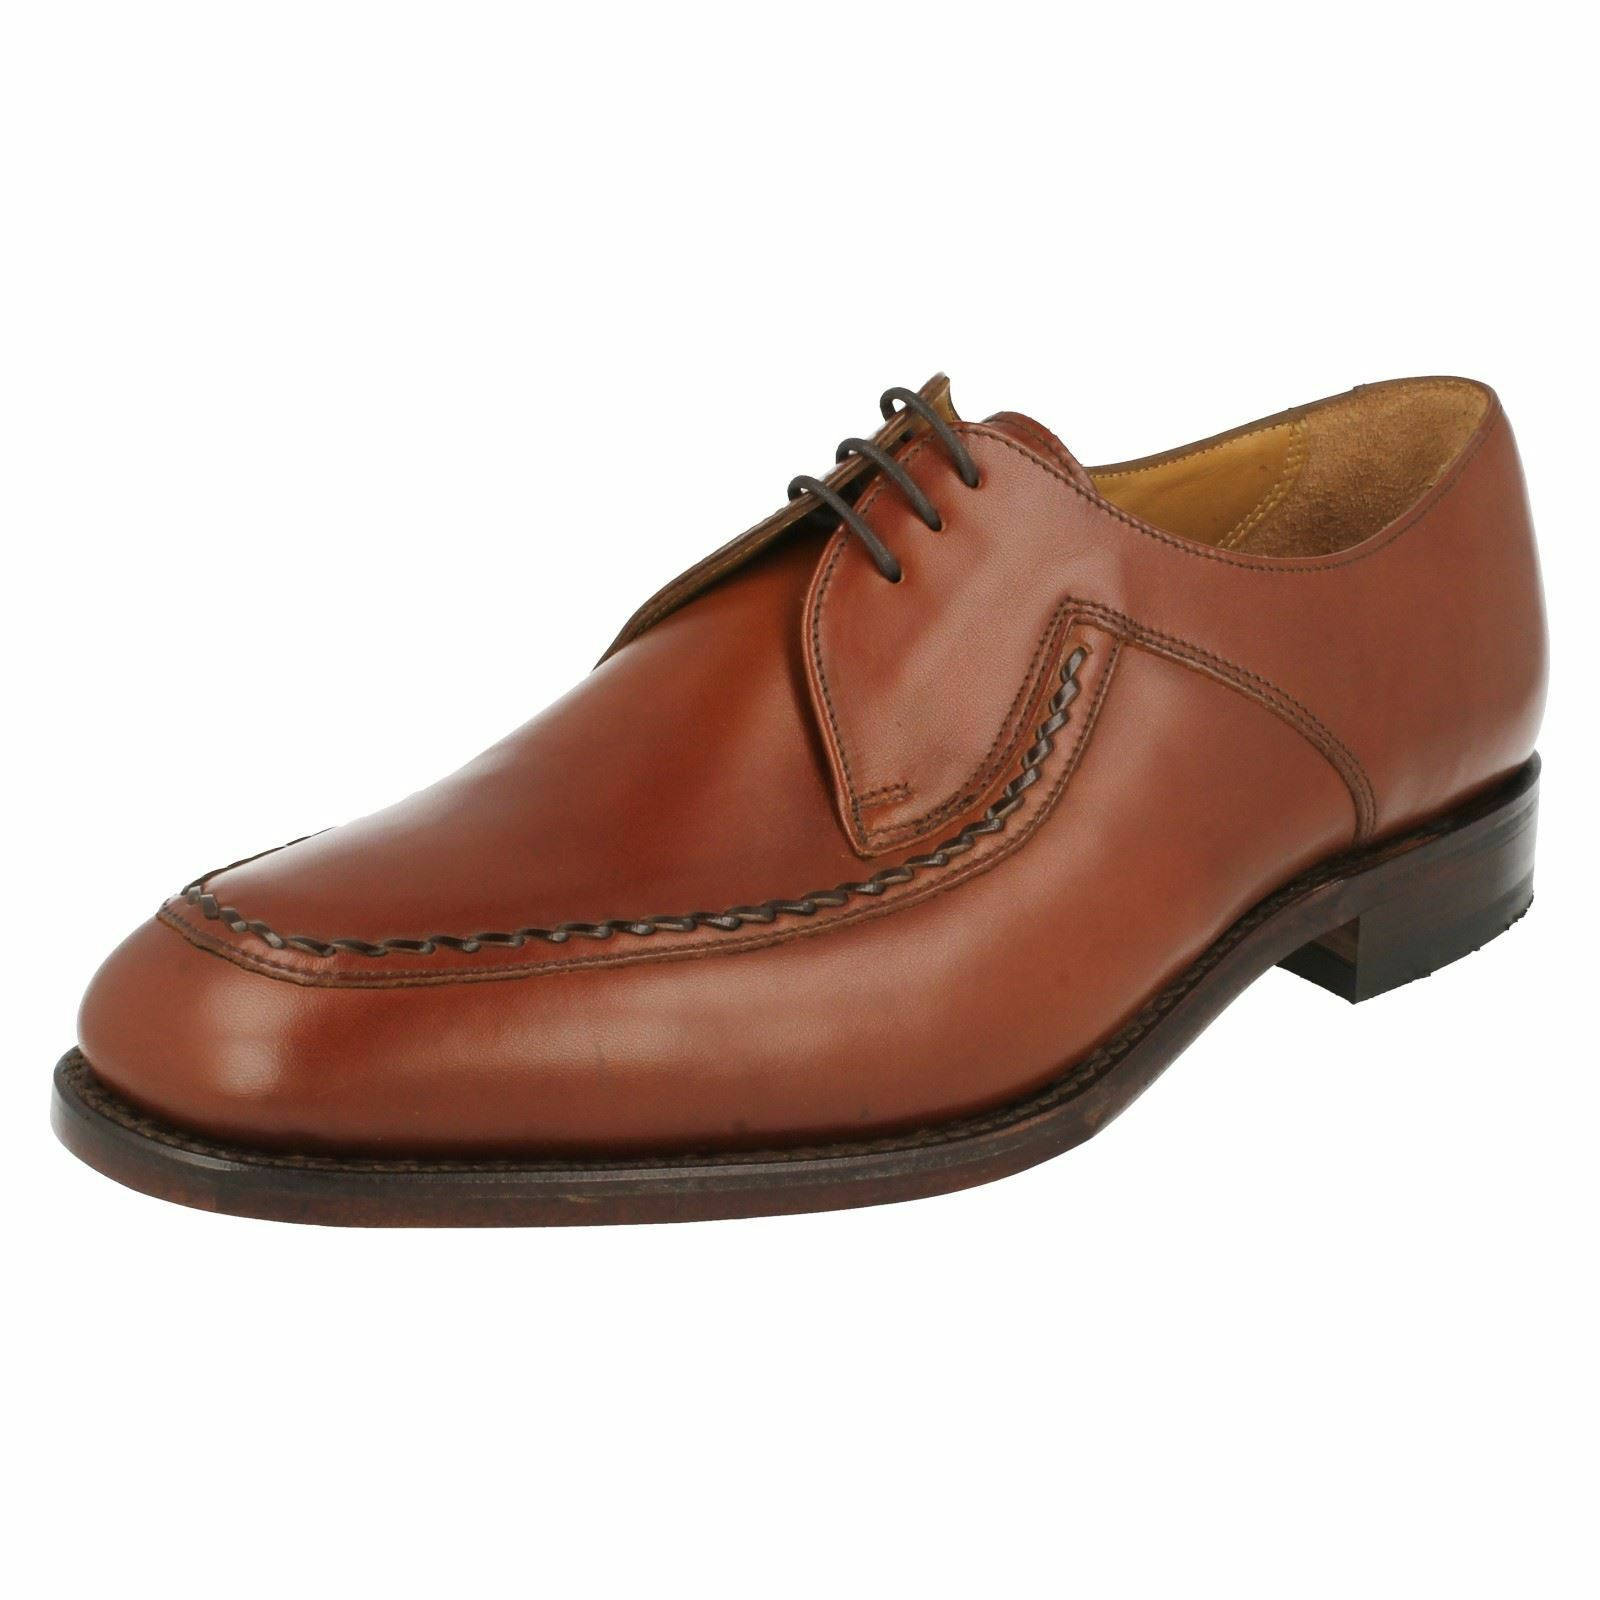 Loake Fontwell Tan Leather Smart Apron Front Lace Up Shoes